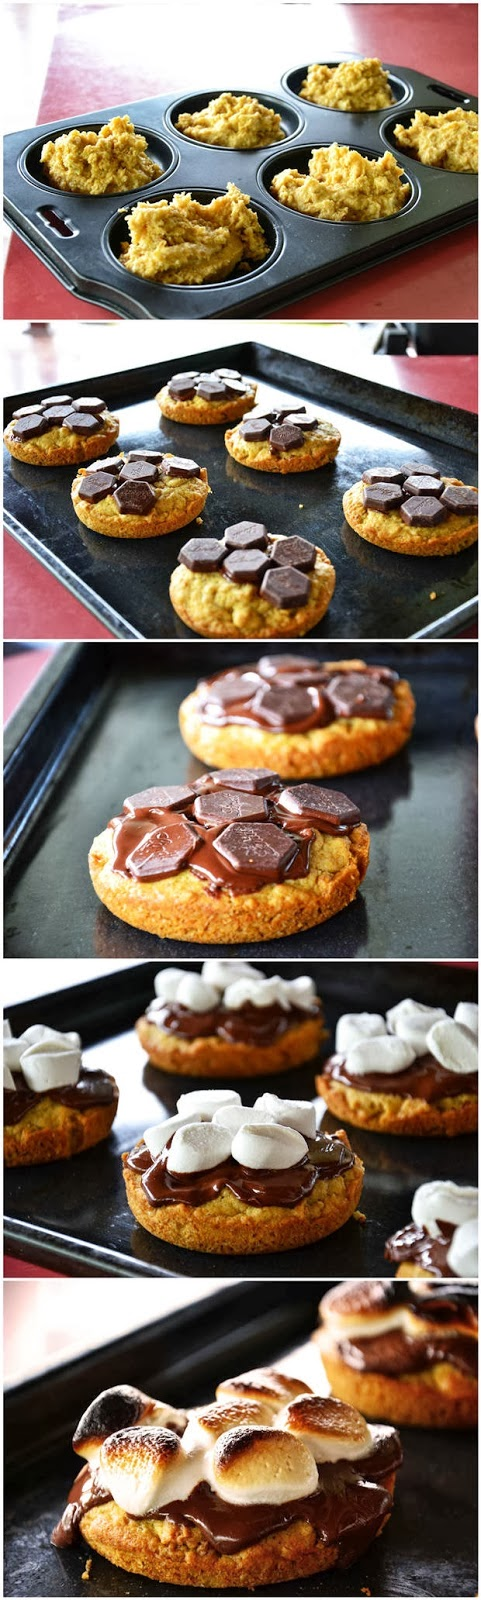 S'mores-Deep-Dish-Cookie-Recipe